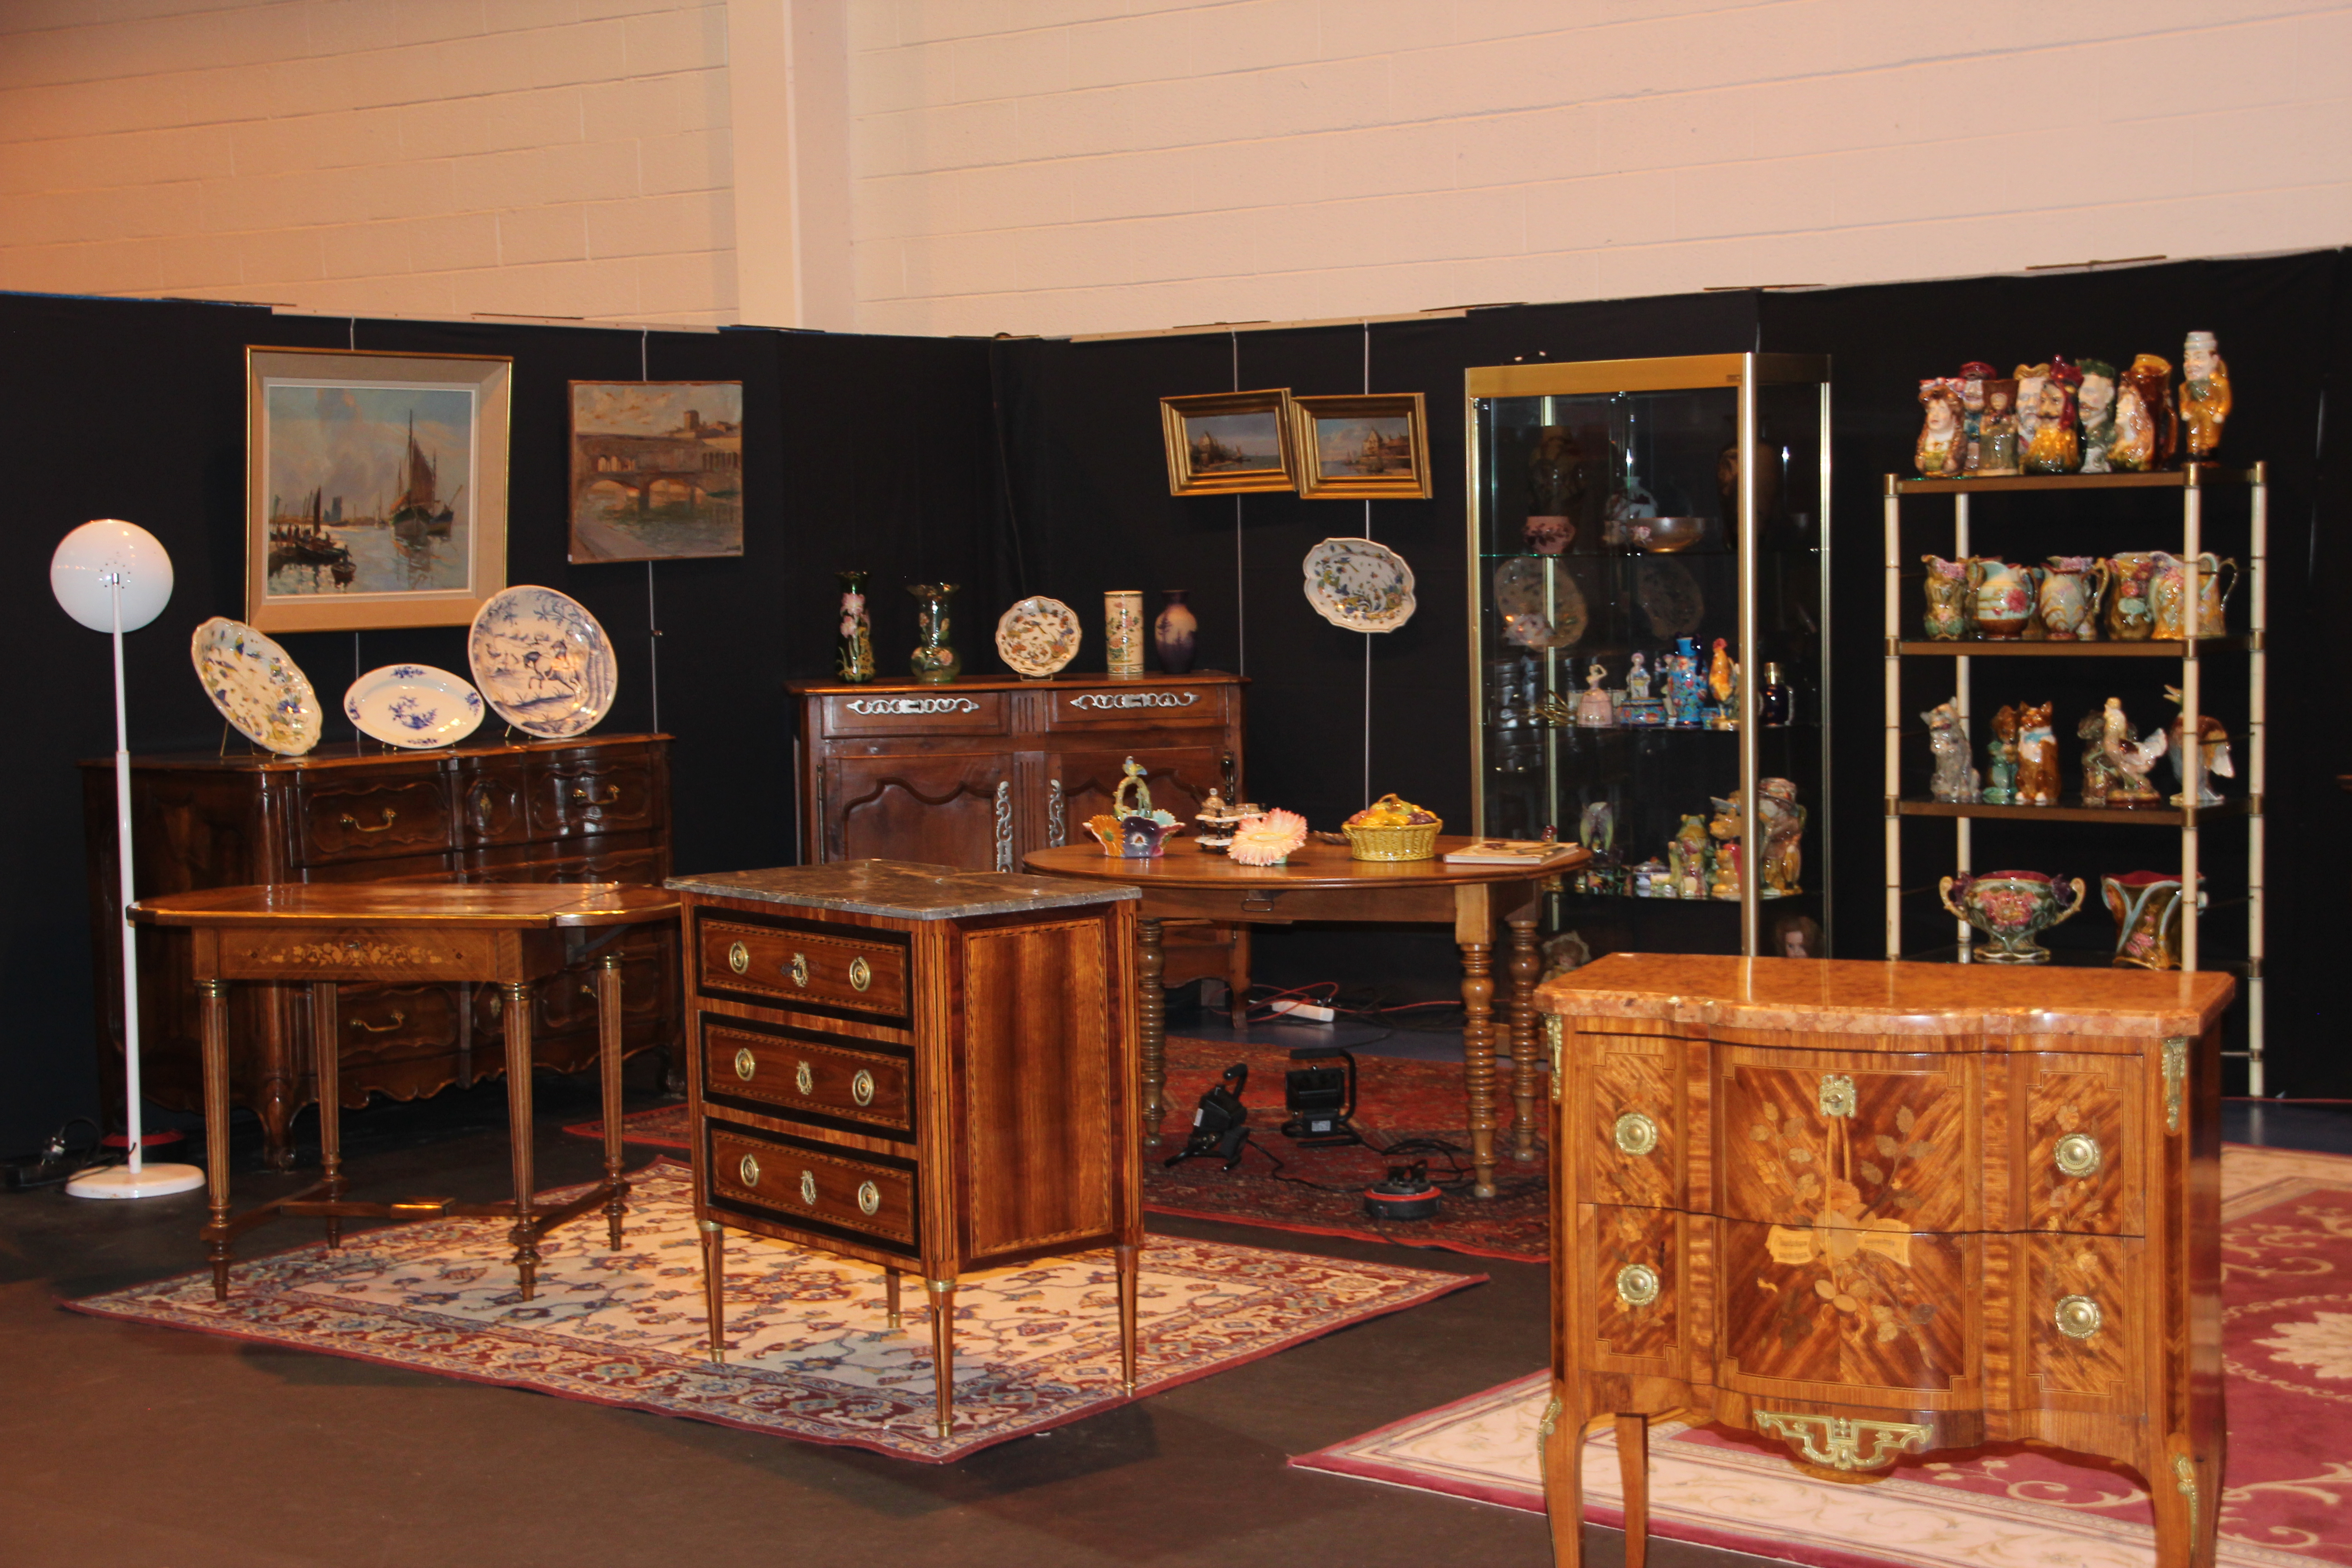 Salon des antiquaires la couture for Salon antiquaires 2017